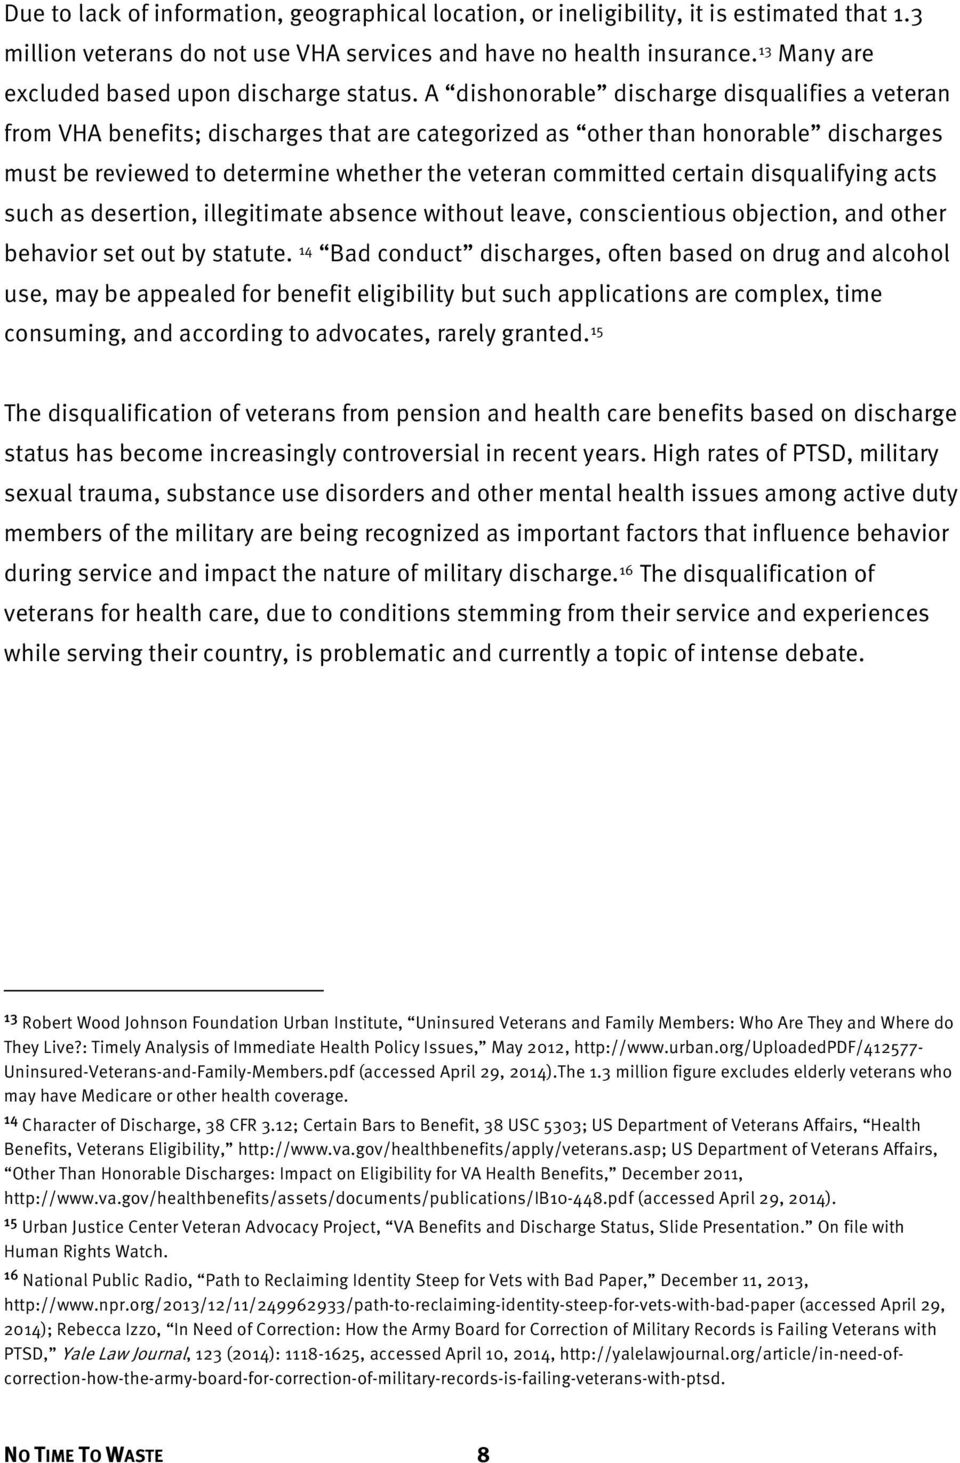 A dishonorable discharge disqualifies a veteran from VHA benefits; discharges that are categorized as other than honorable discharges must be reviewed to determine whether the veteran committed